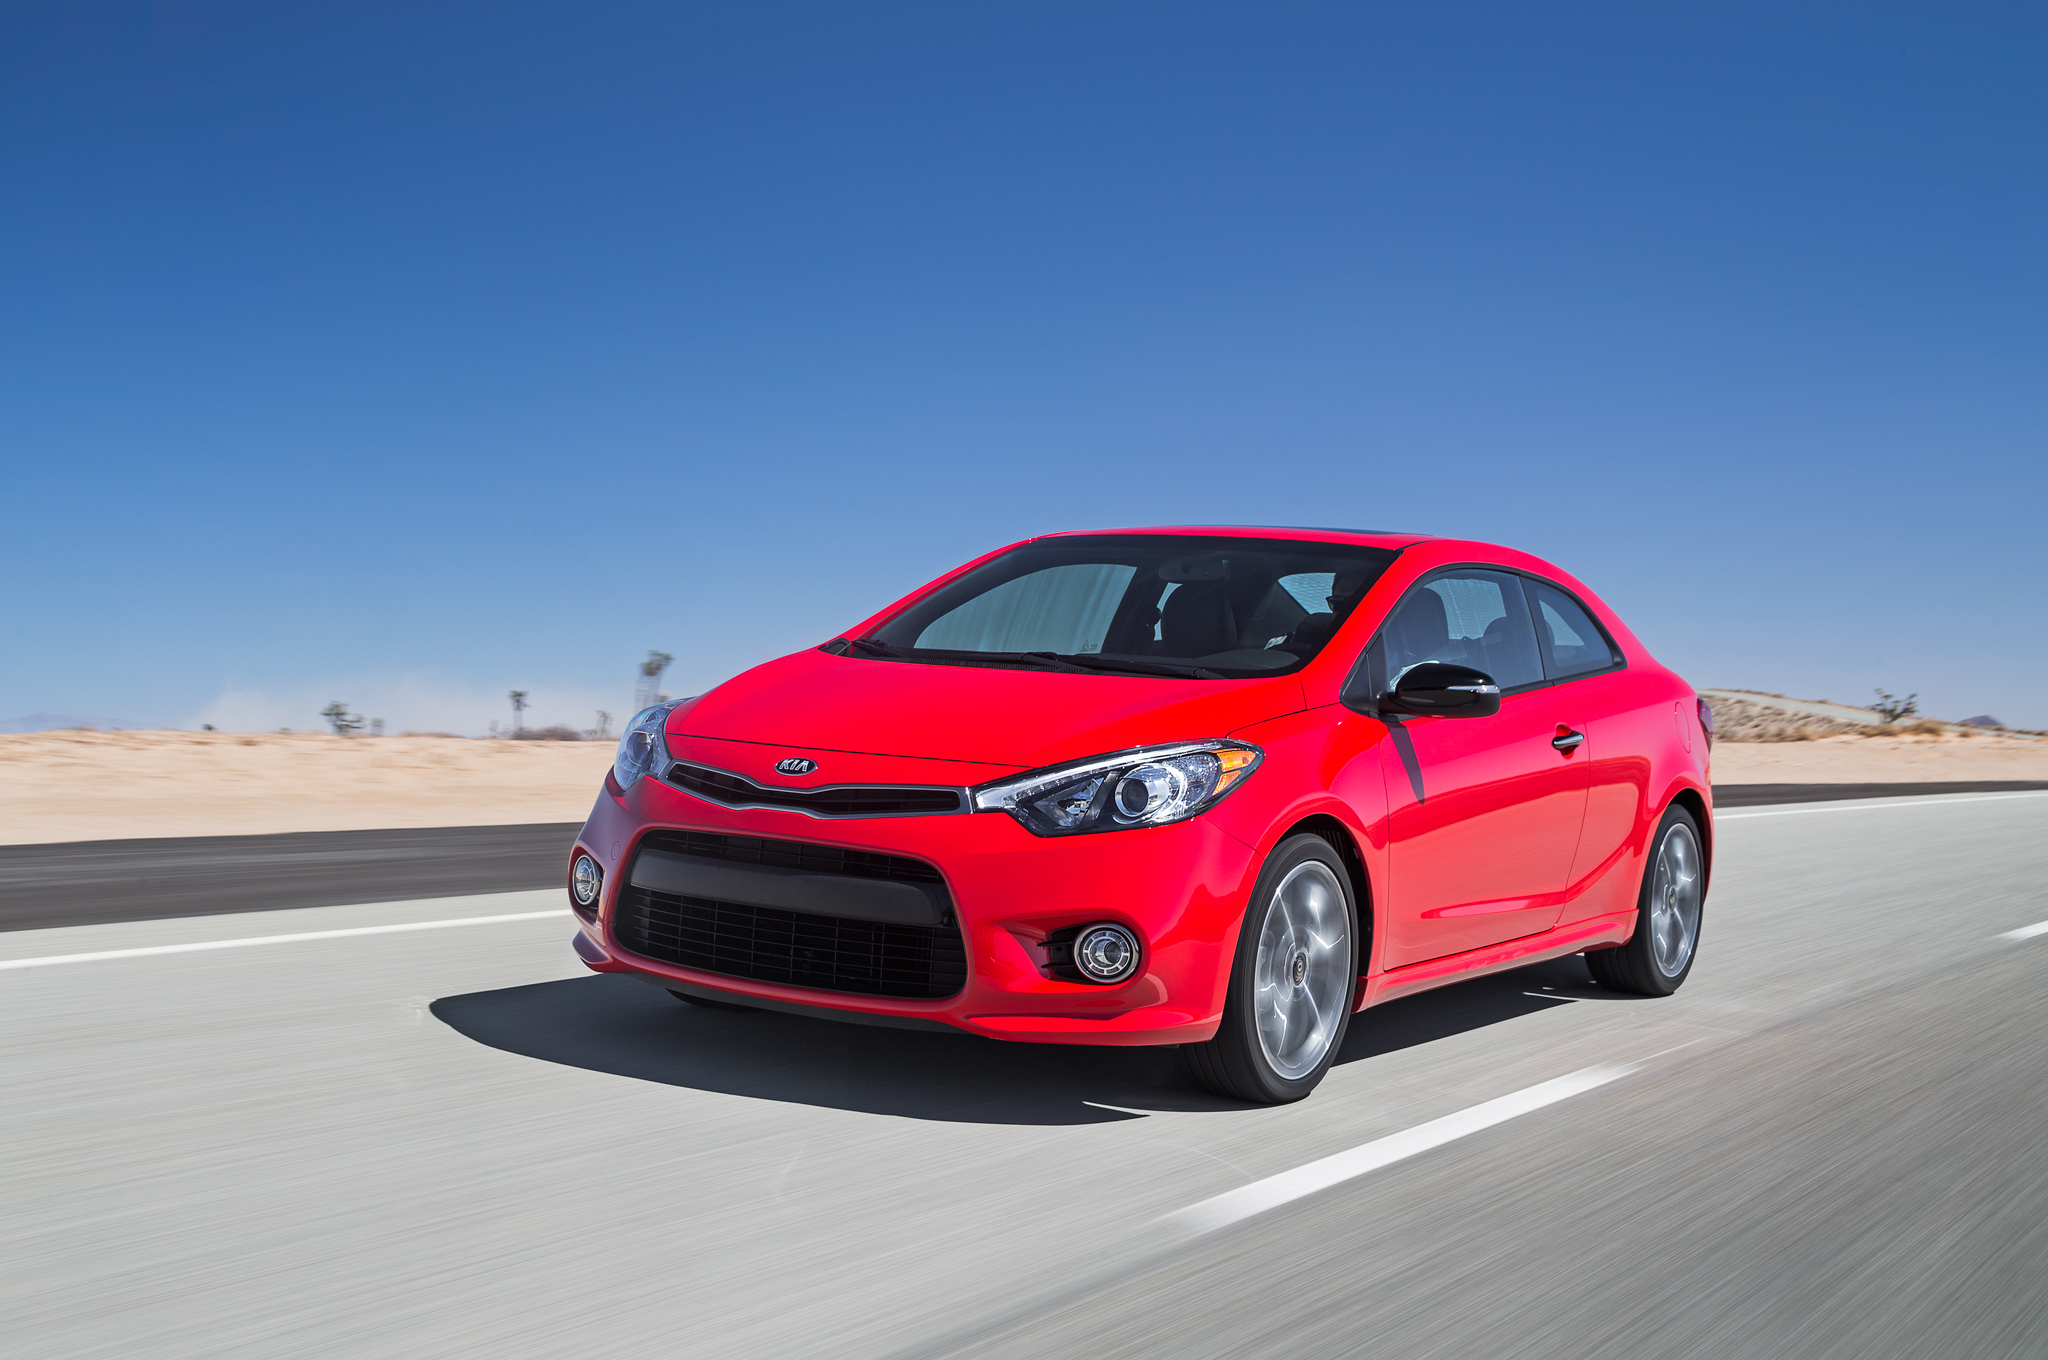 2014 Kia Forte Koup SX T GDI First Test